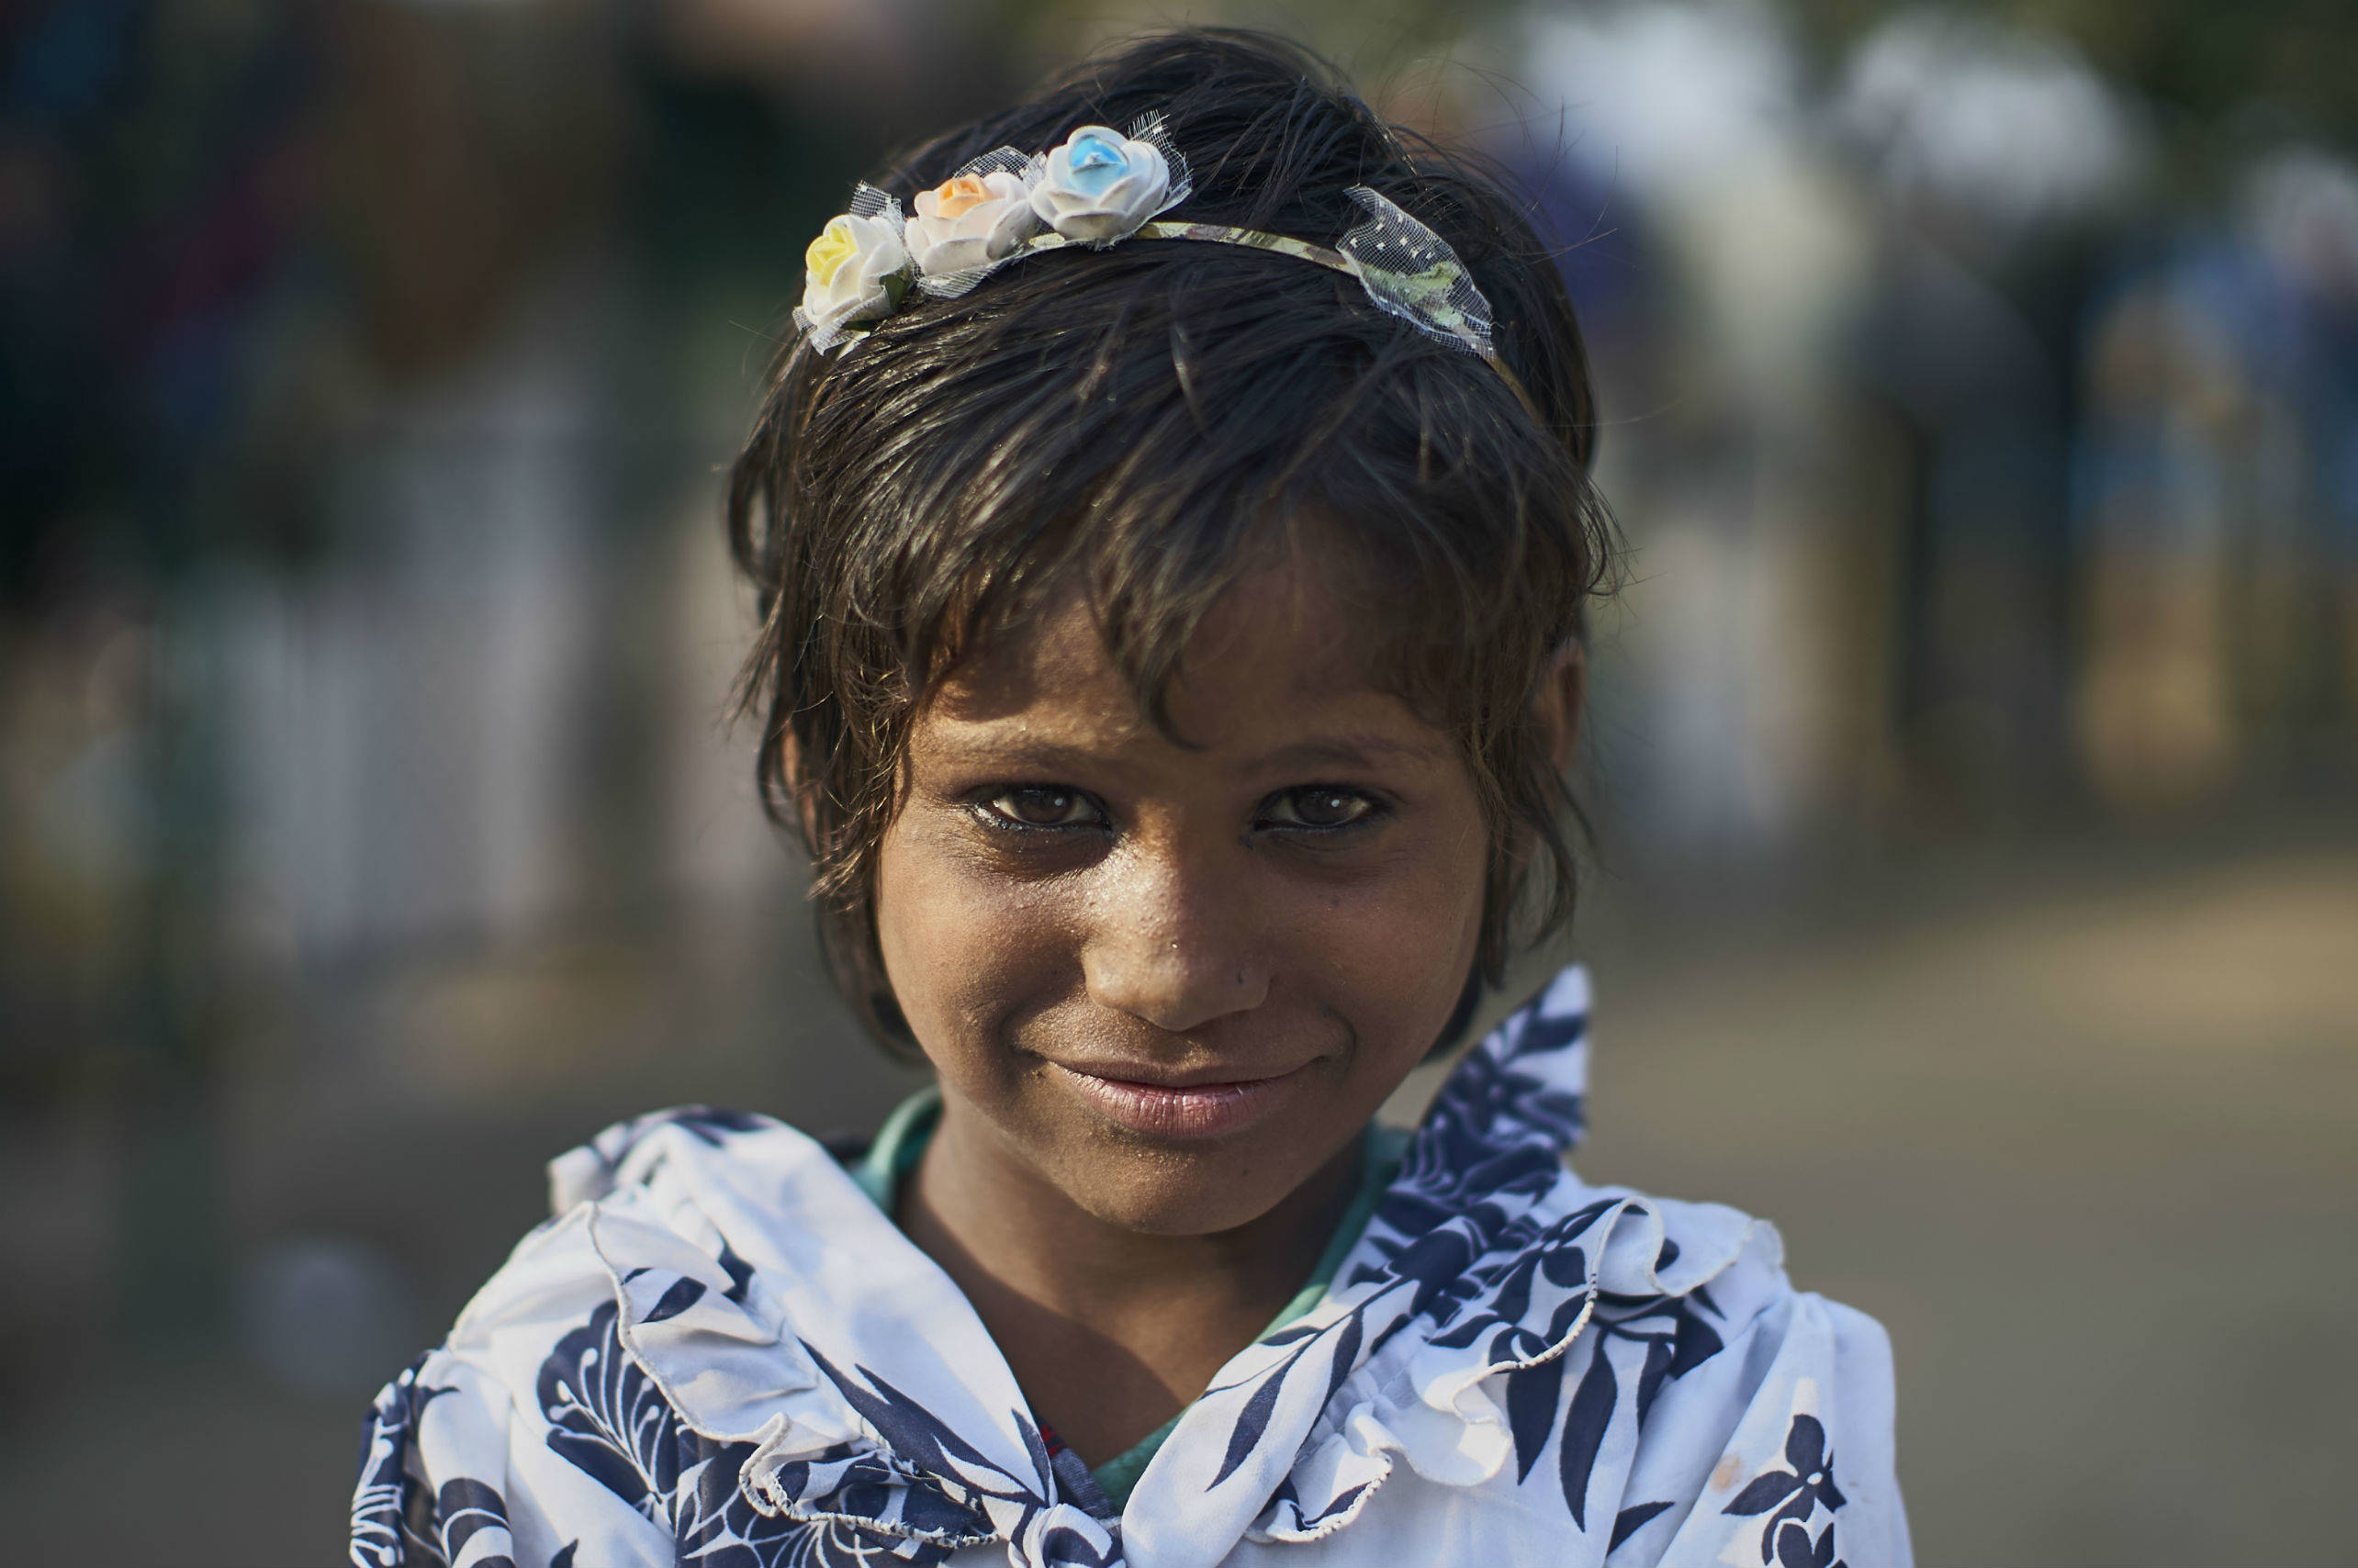 Meera lives in a large marketplace in Delhi, India with her mother and her two younger sisters